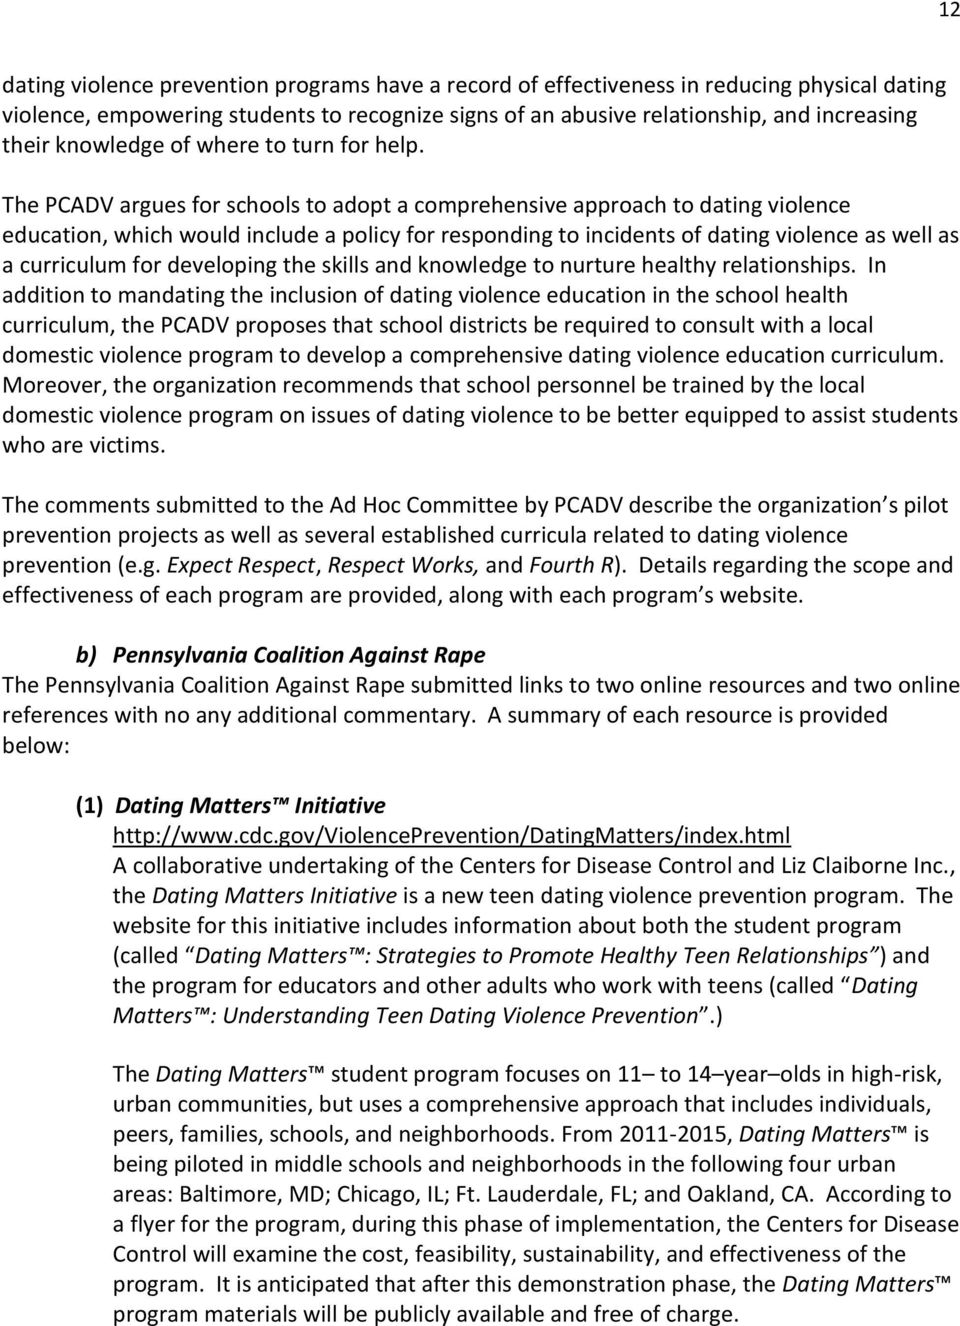 The PCADV argues for schools to adopt a comprehensive approach to dating violence education, which would include a policy for responding to incidents of dating violence as well as a curriculum for